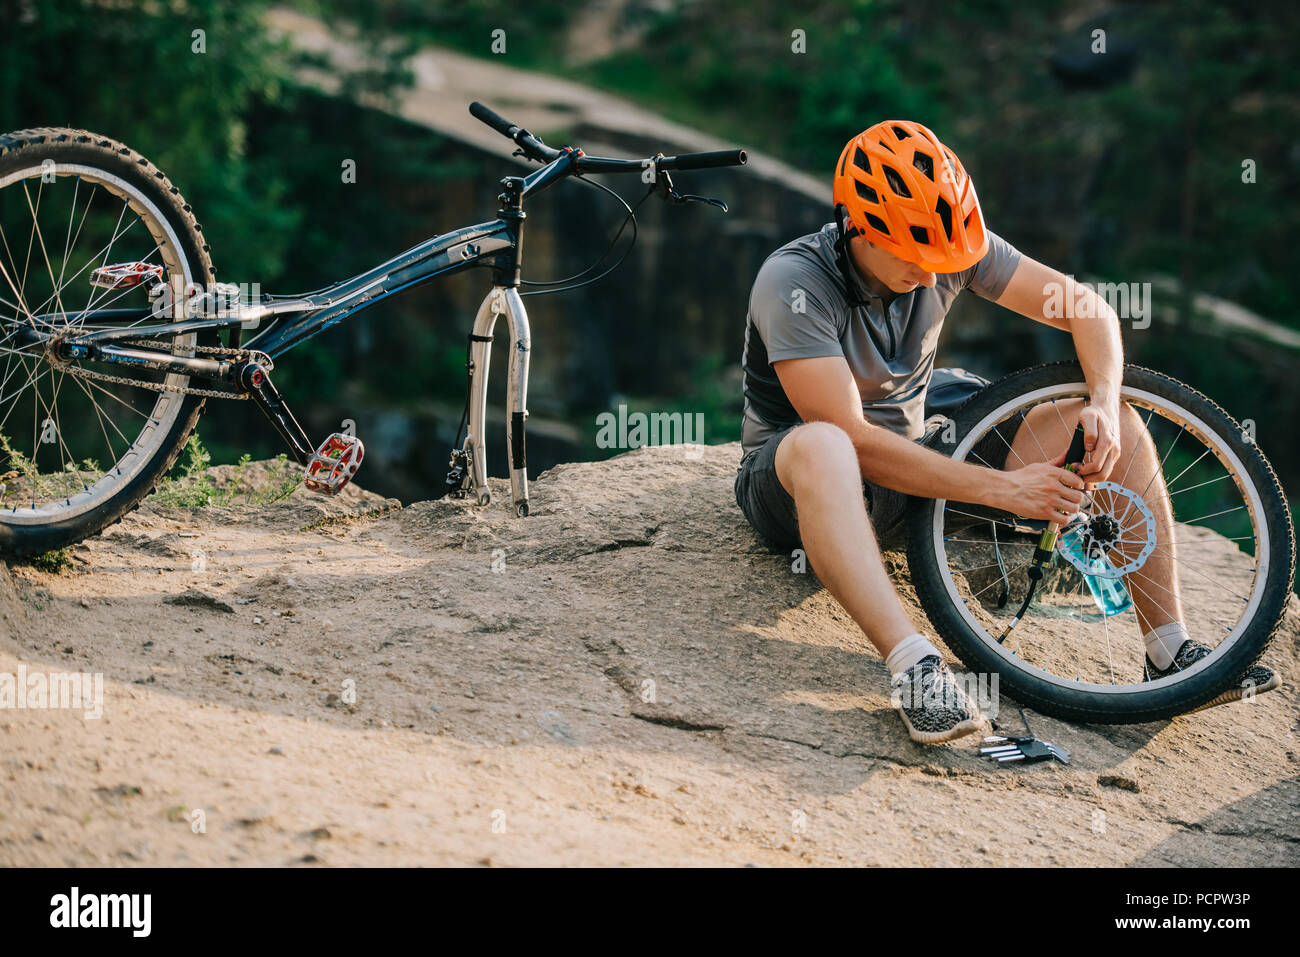 young trial biker fixing bicycle wheel outdoors while sitting on stone - Stock Image